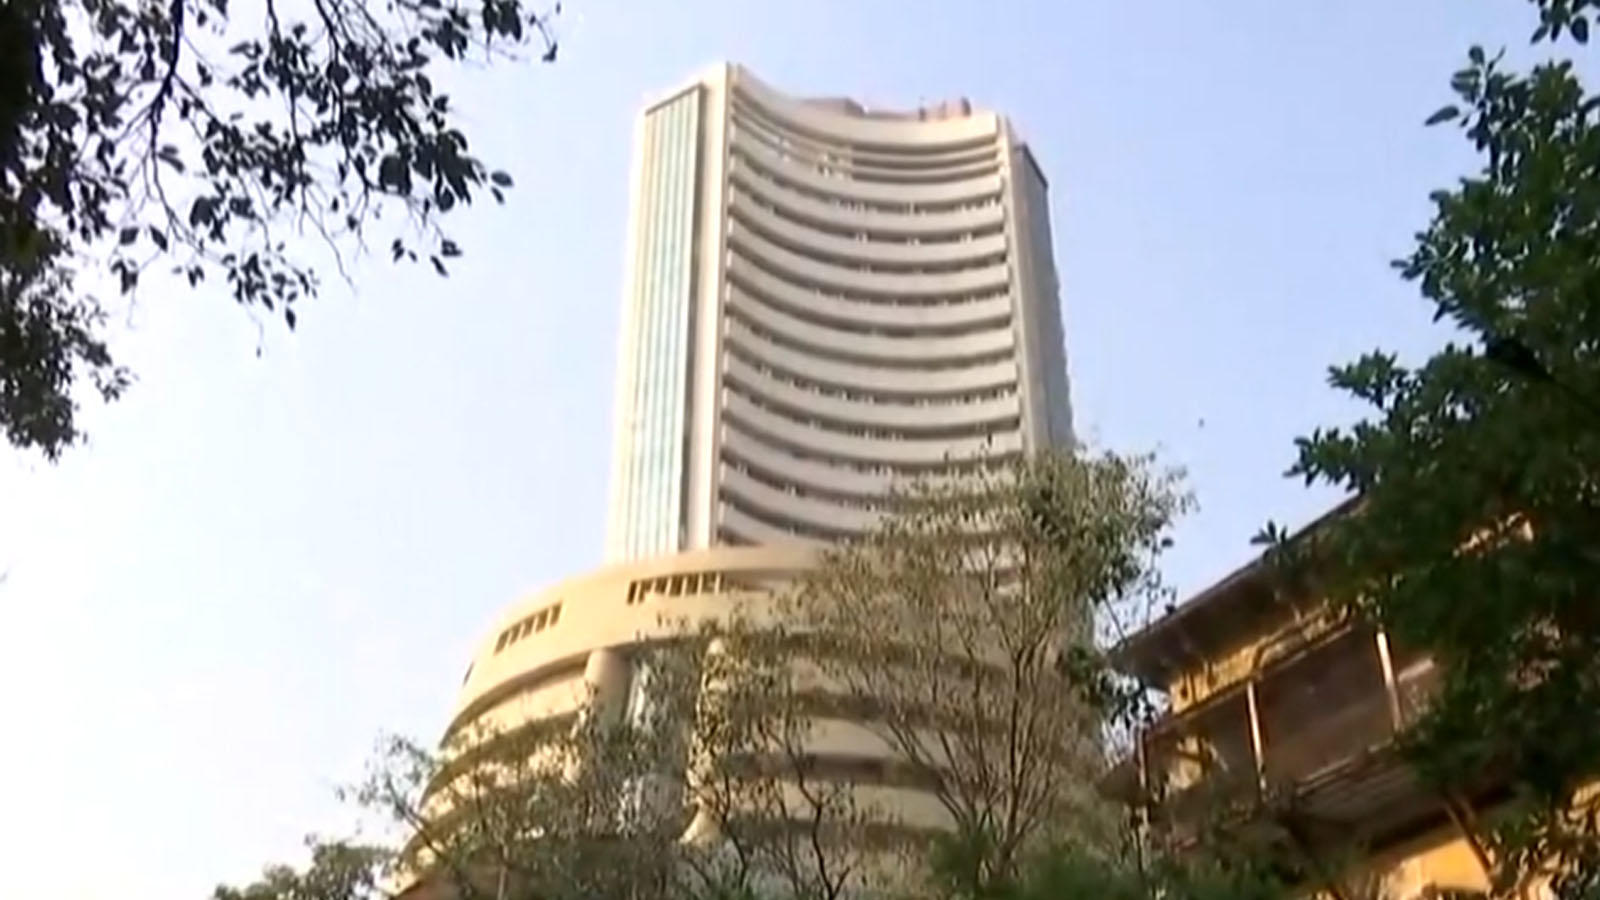 opening-session-equities-continue-upward-march-amid-positive-global-cues